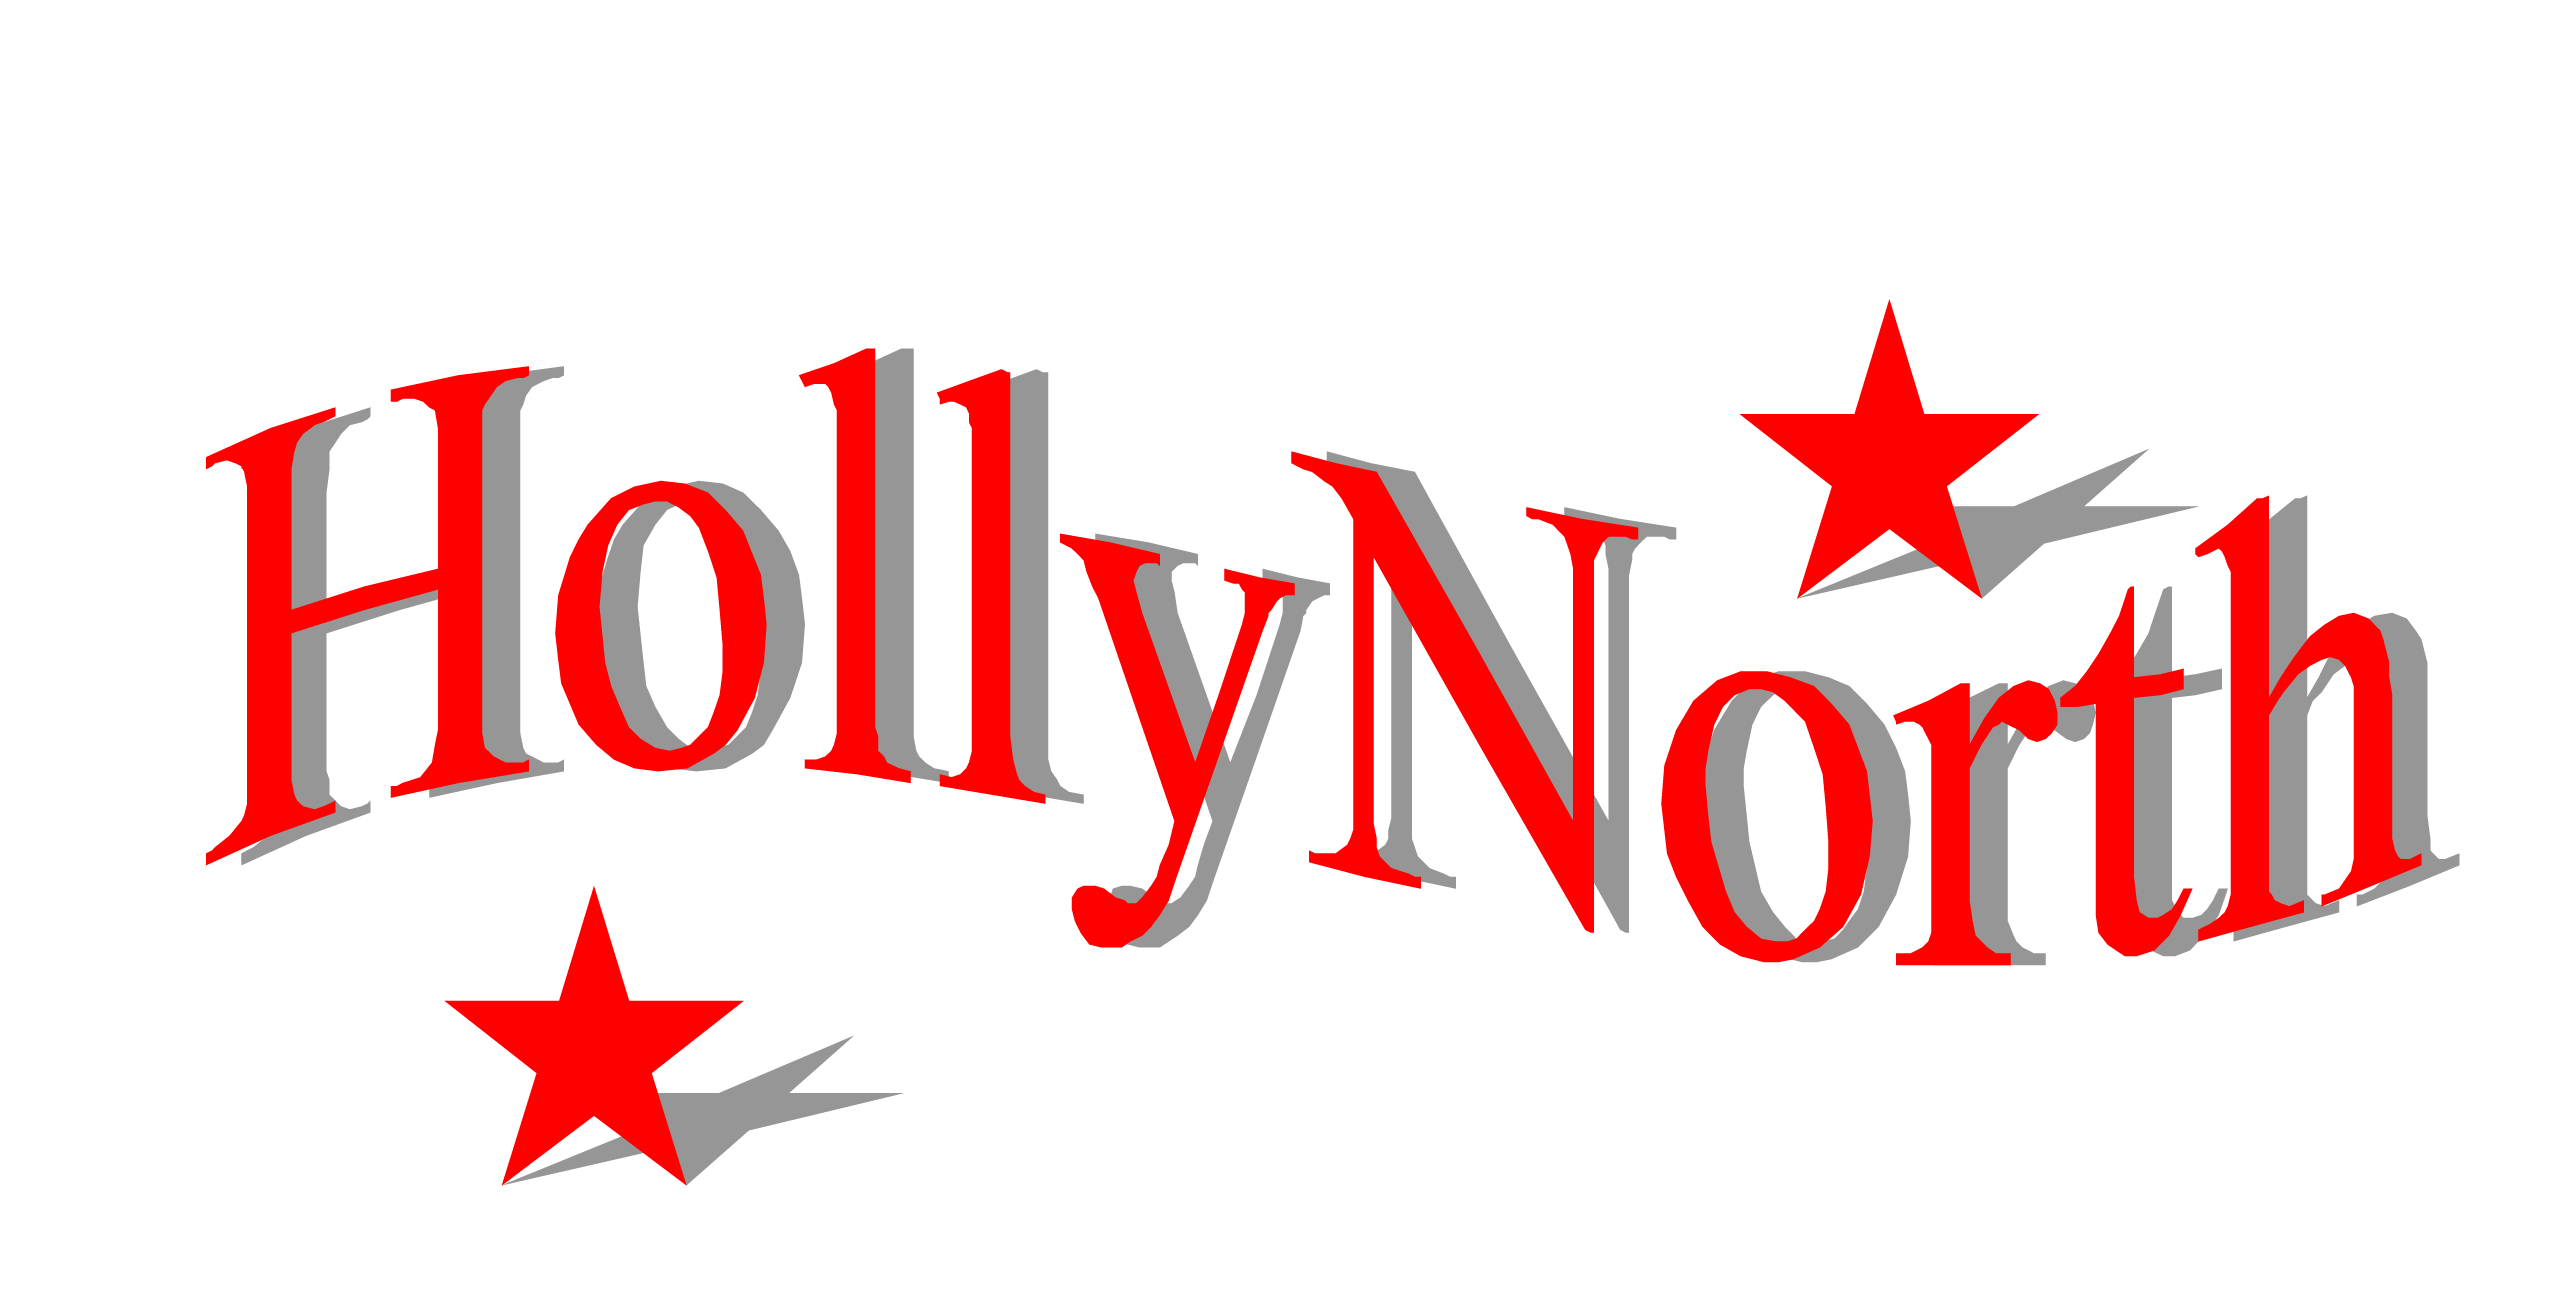 HollyNorth Production Supplies | Theatre, Film, TV